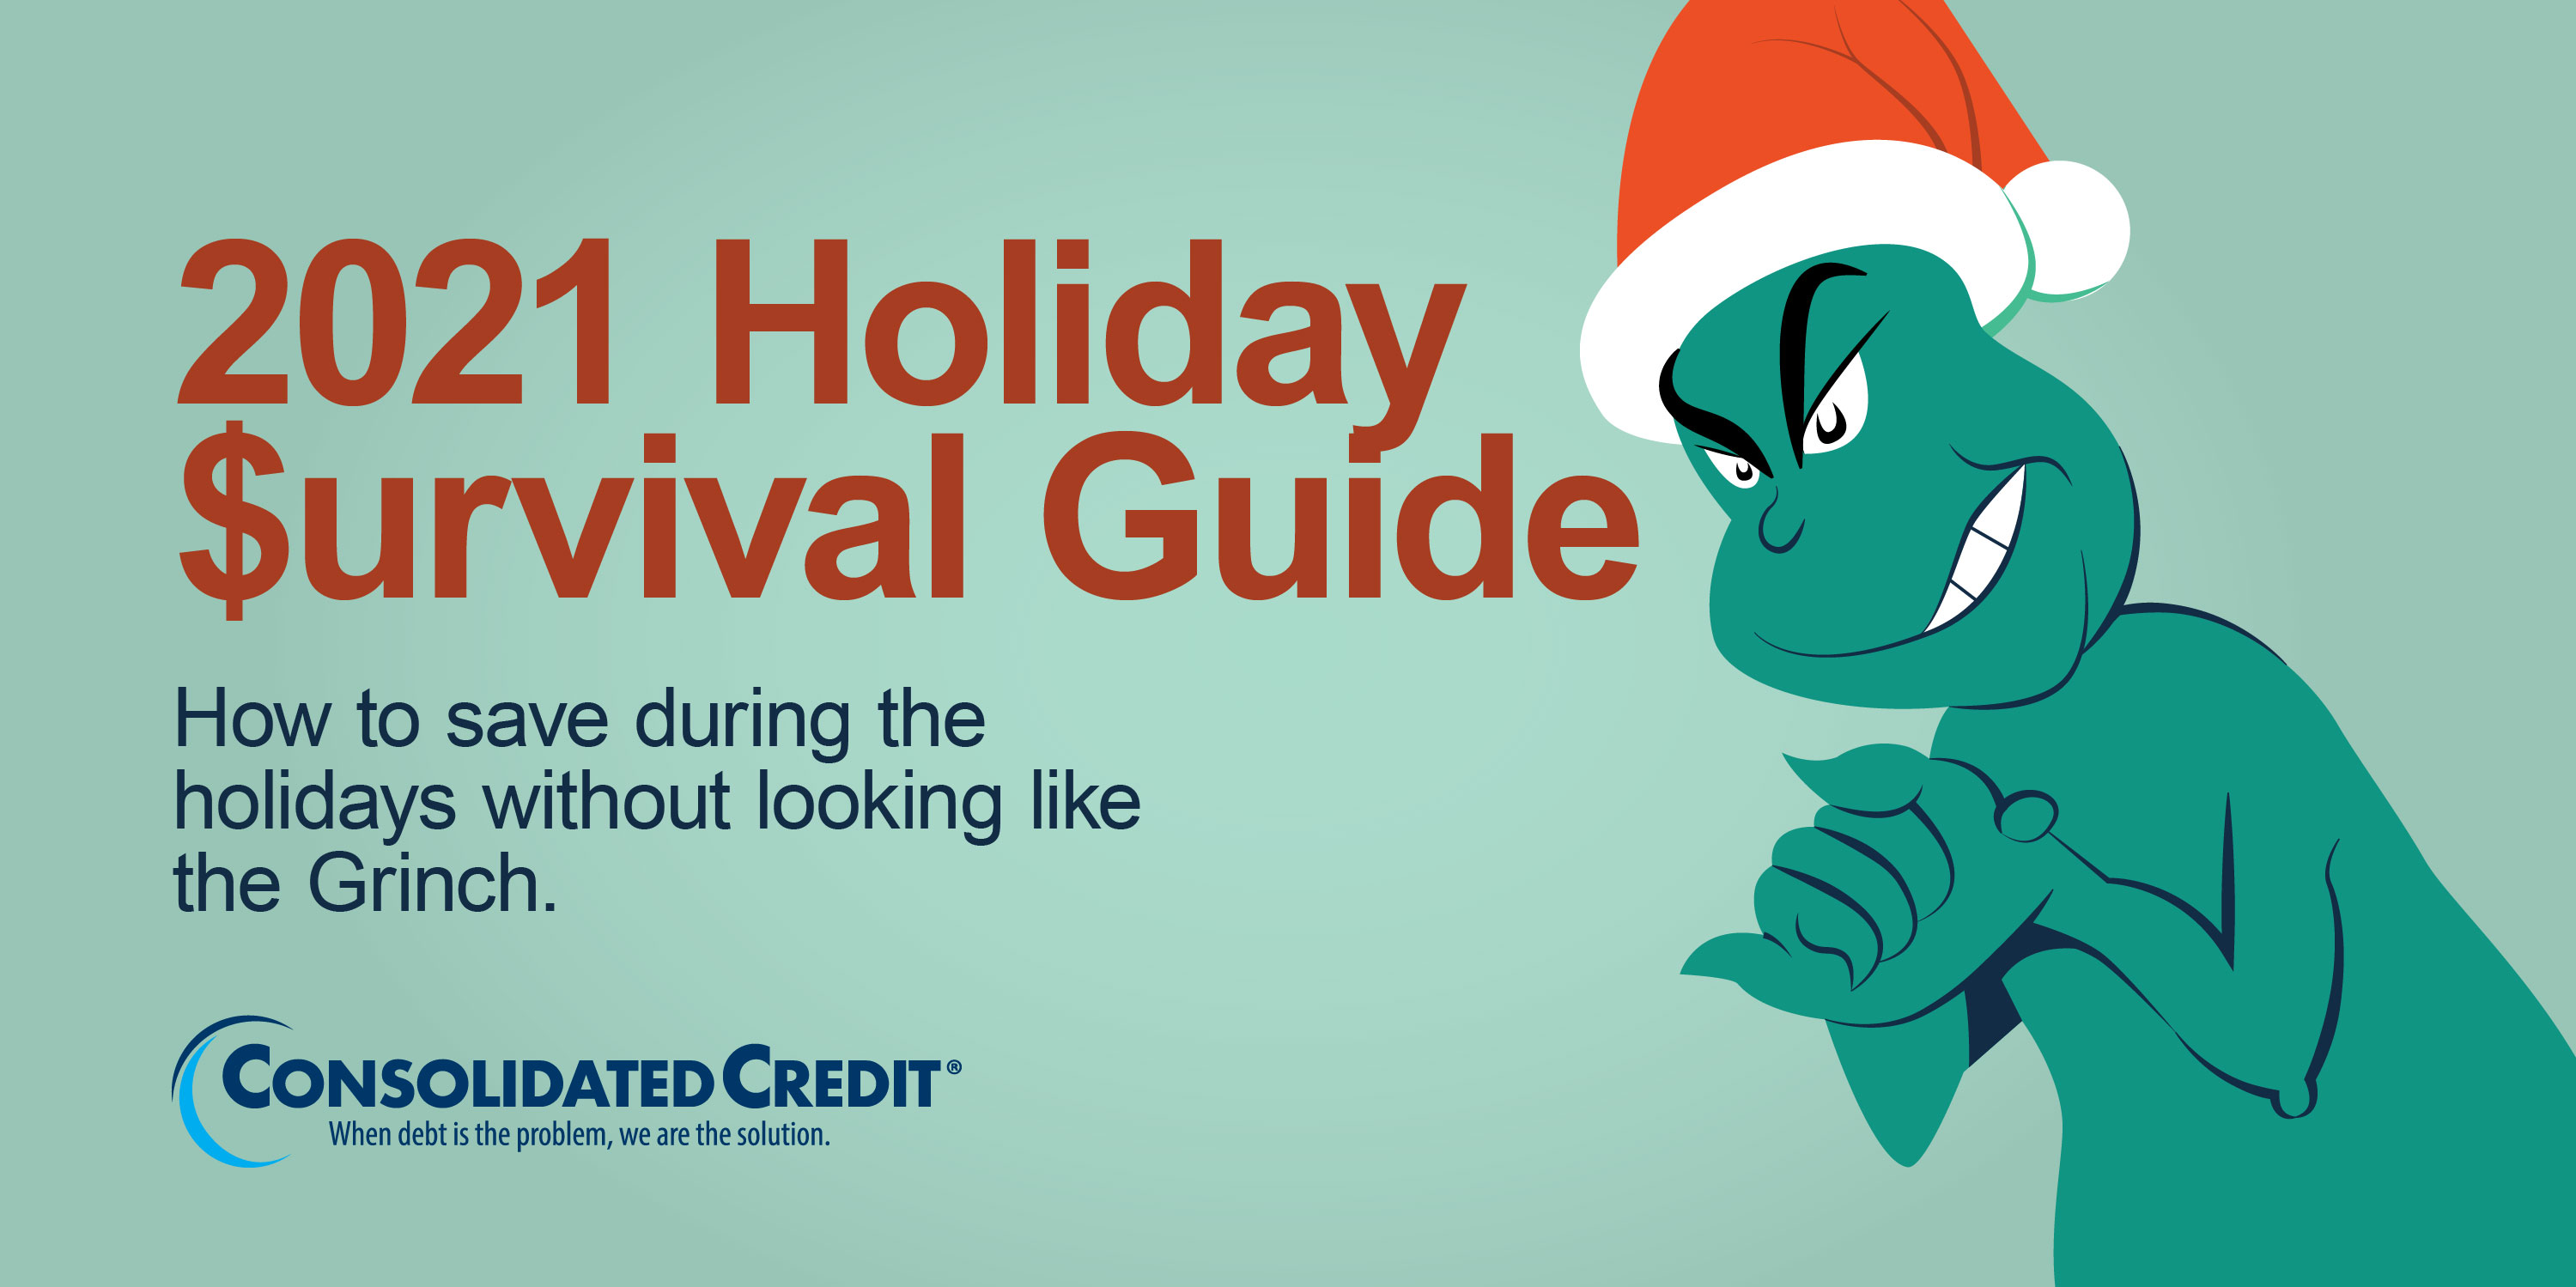 2021 Holiday $urvival Guide: How to save during the holidays without looking like the Grinch